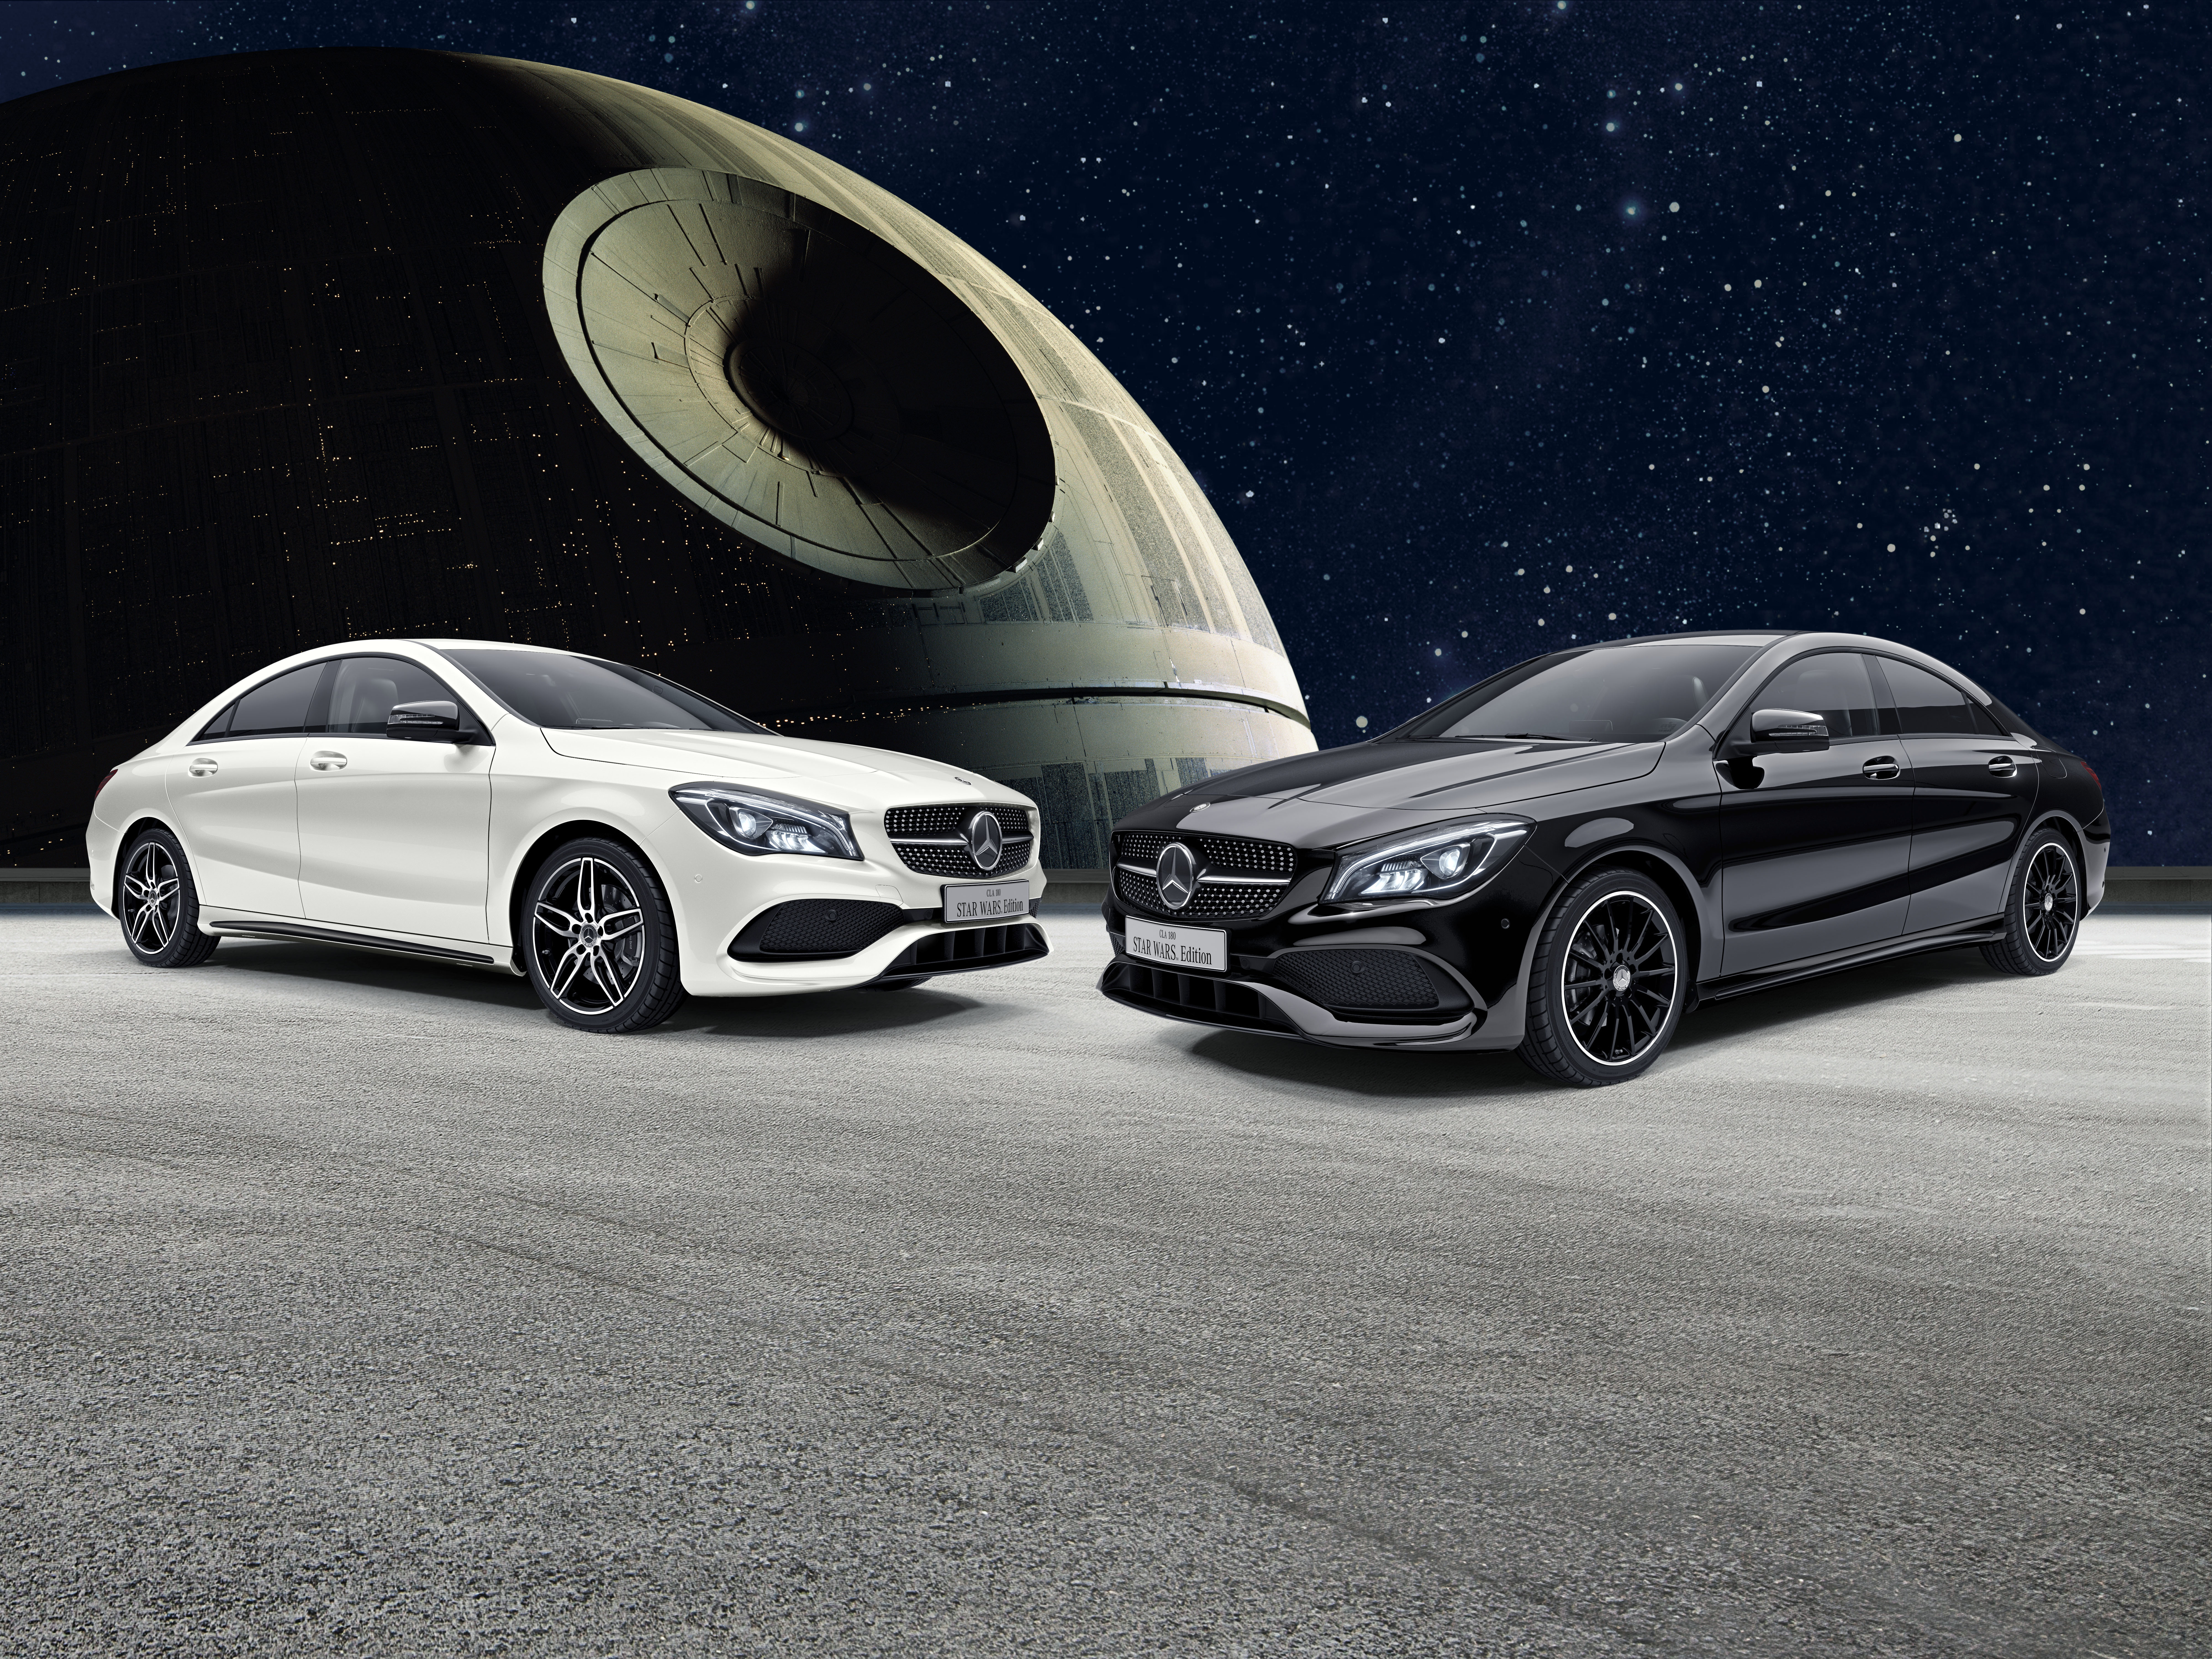 mercedes benz cla gets star wars themed special edition in japan autoevolution. Black Bedroom Furniture Sets. Home Design Ideas